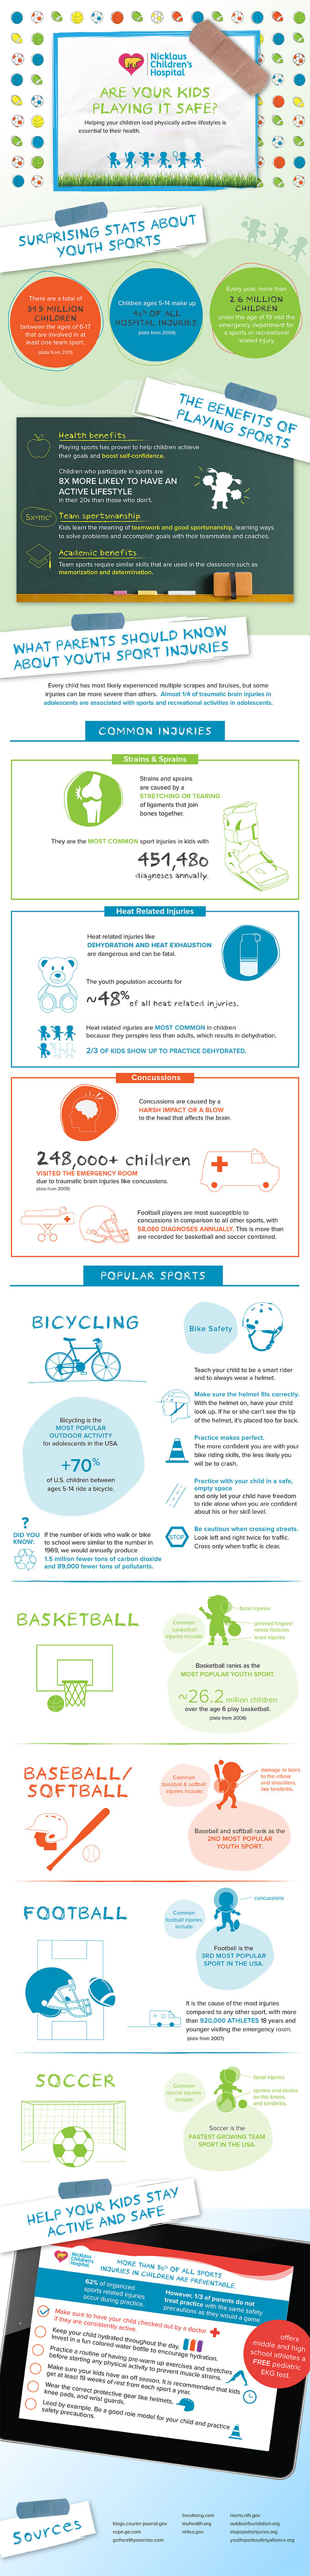 Are Your Kids Playing It Safe Helping your children lead physically active lifestyles is essential to their health. Explore Nicklaus Children's Hospital, formerly Miami Children's Hospital's best tips for keeping your young athletes safe and active